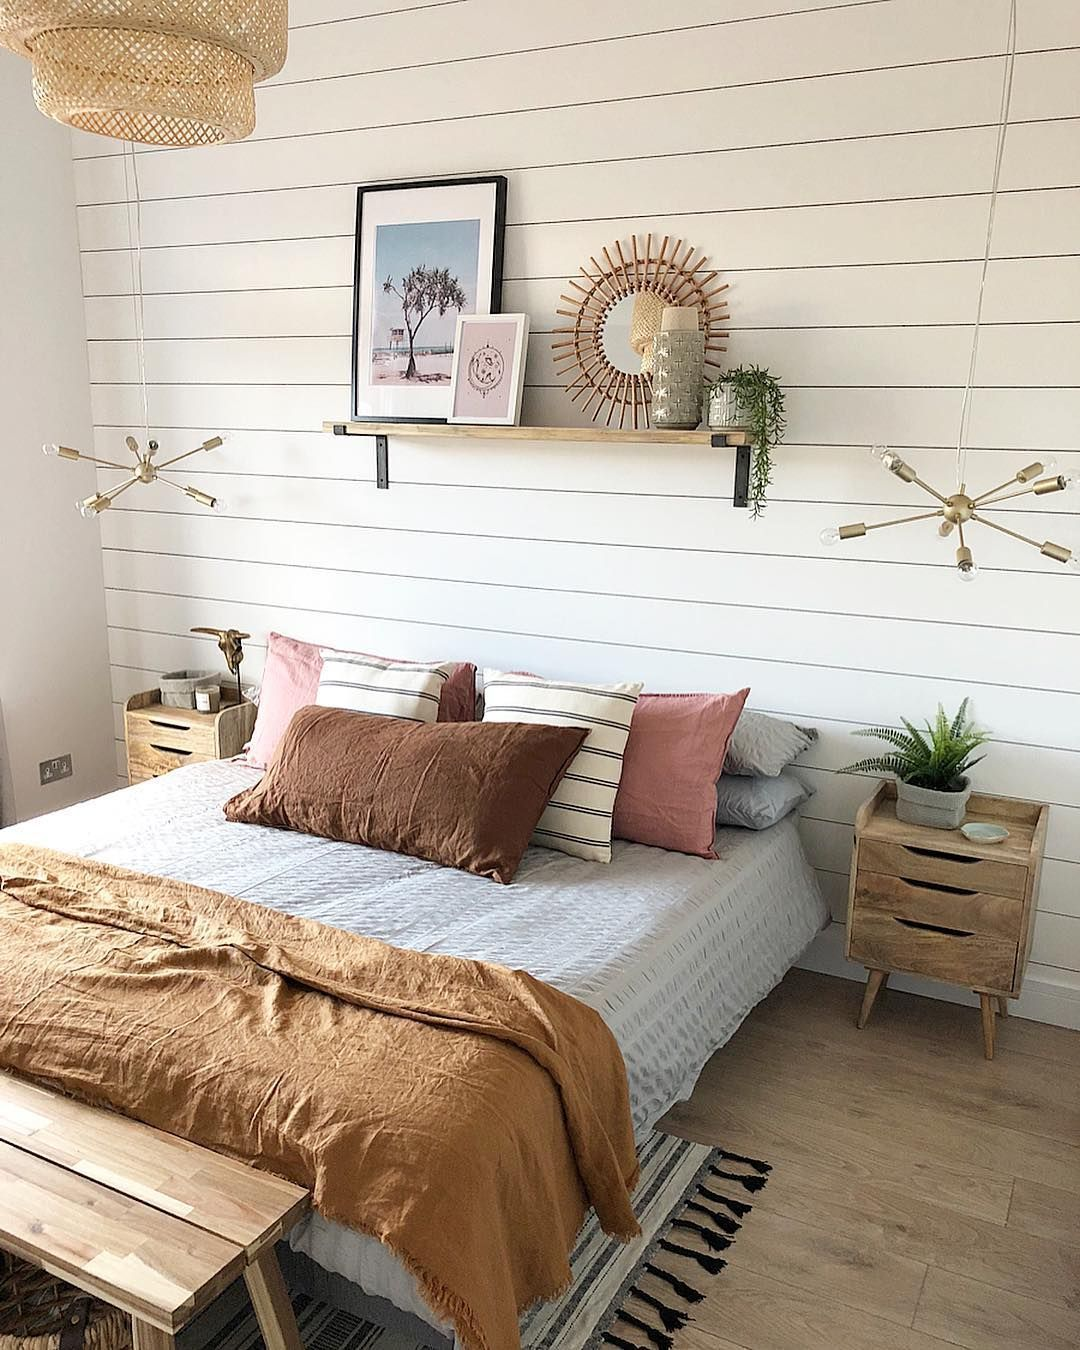 20 Decorating Tricks For Your Bedroom: 19 Recommended Small Bedroom Ideas 2020